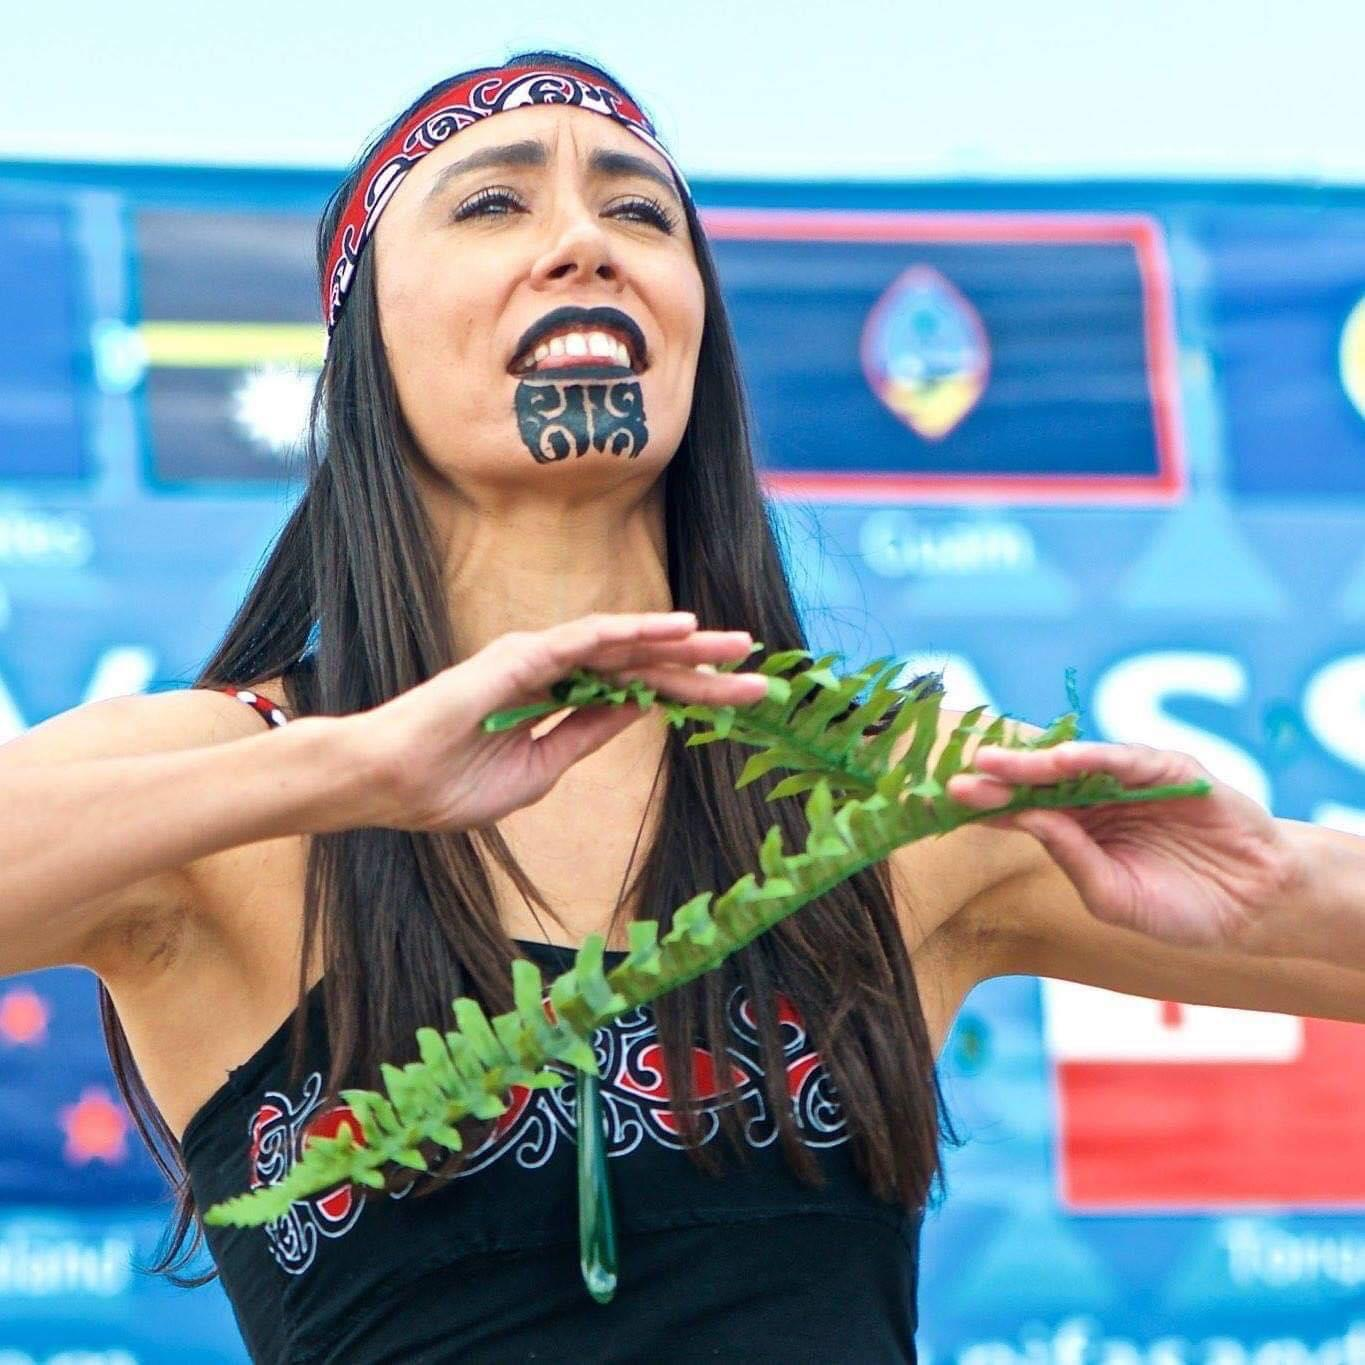 Amelia Butler with traditional Maori face painting, elbows out, with greenery in her hands.